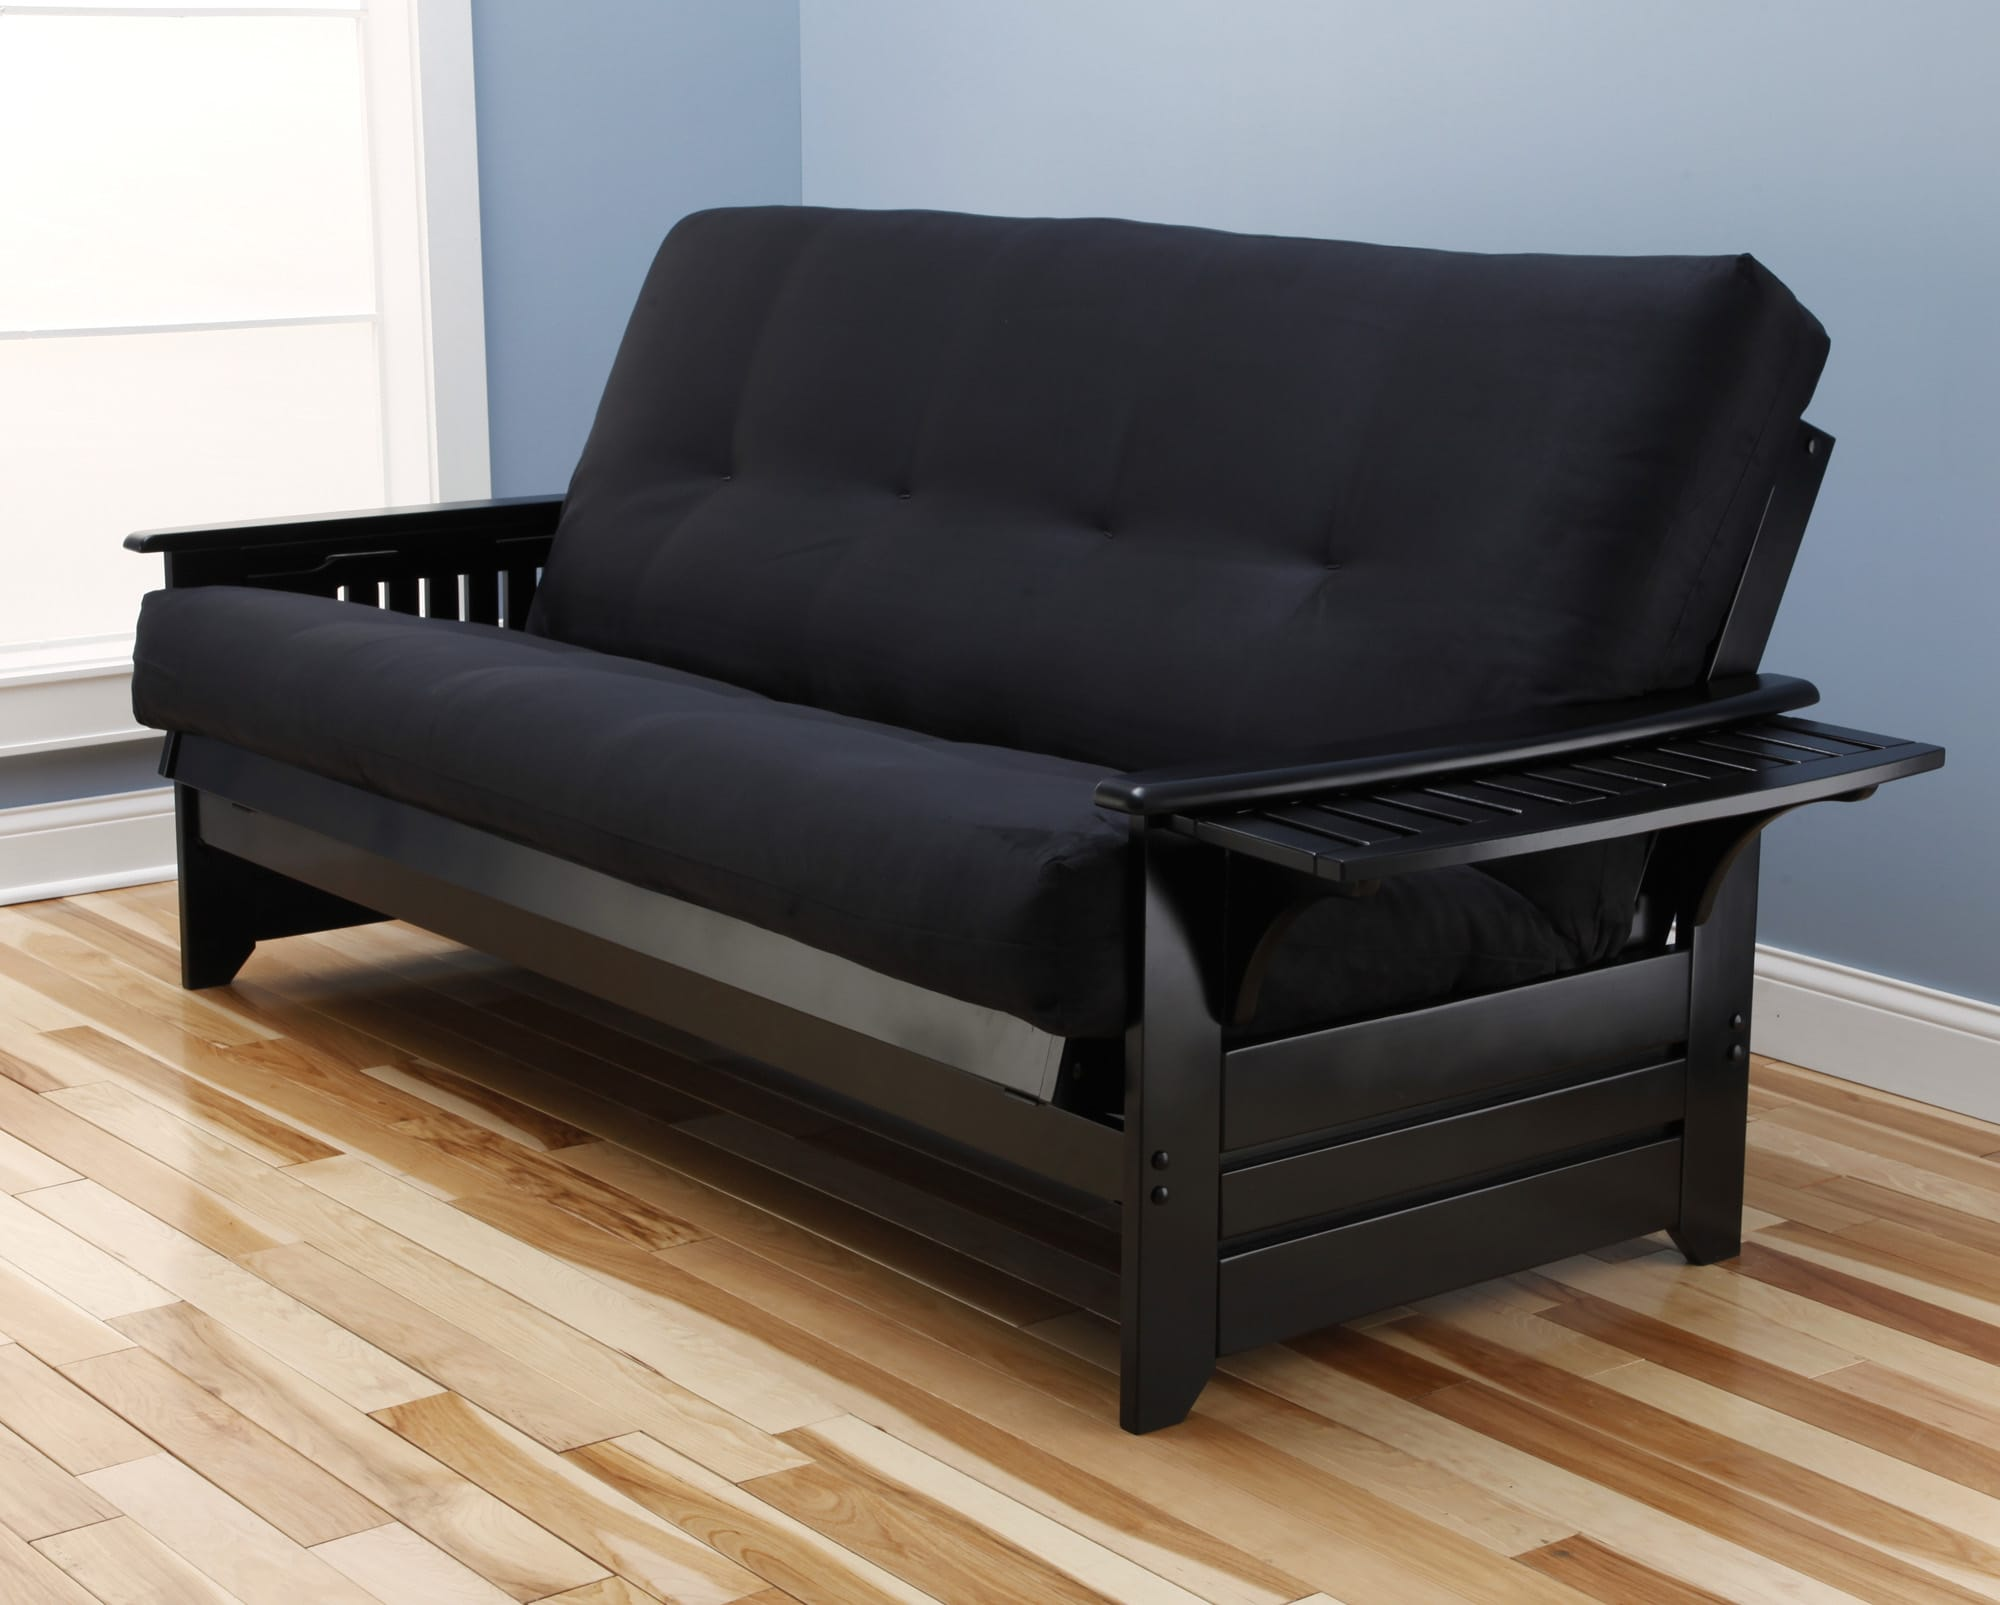 Phoenix Futon Frame Black by Kodiak